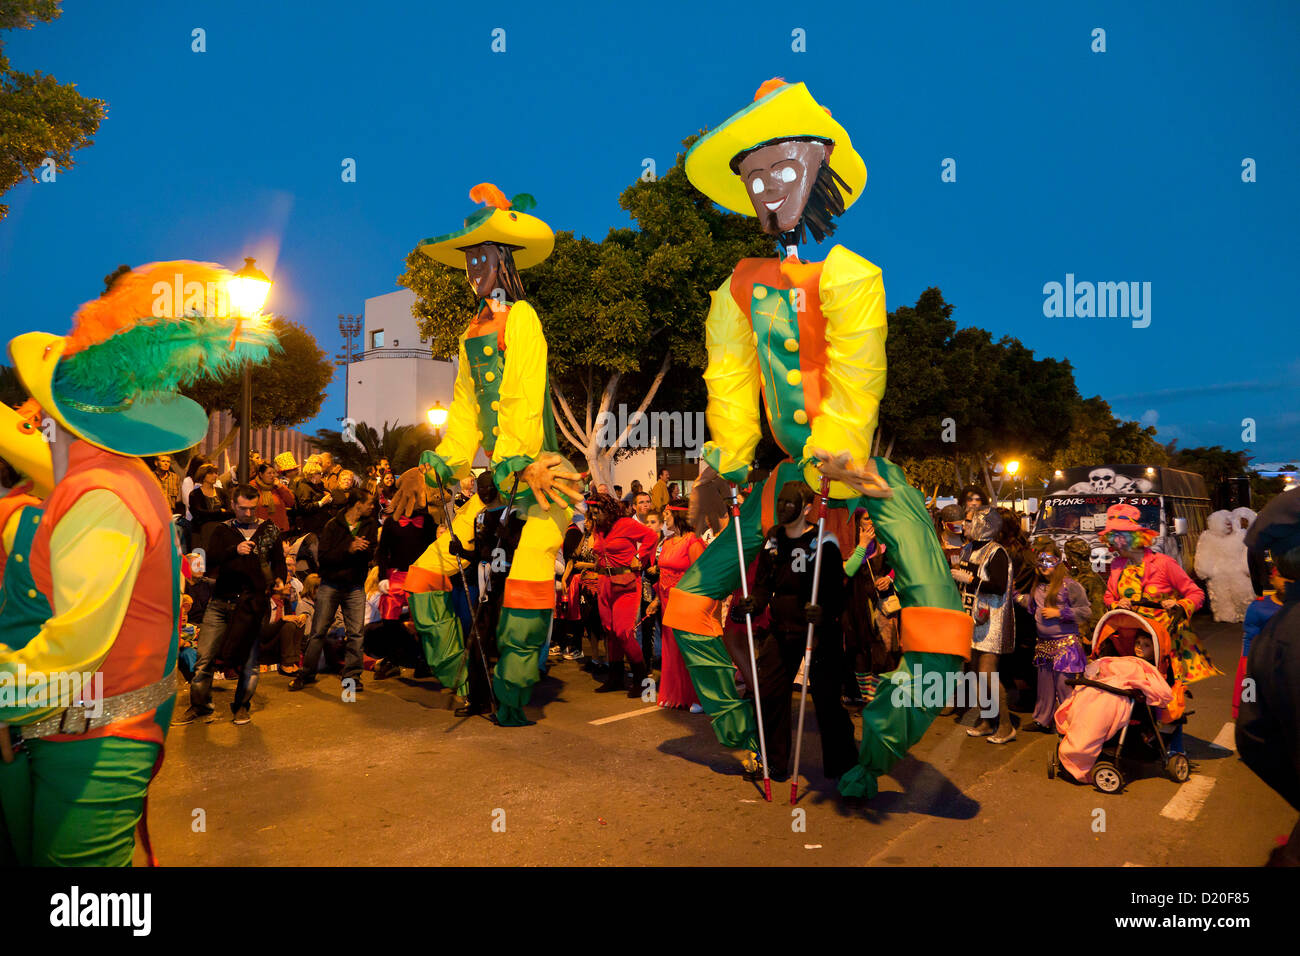 Carnival procession in the evening, Arrecife, Lanzarote, Canary Islands, Spain, Europe - Stock Image